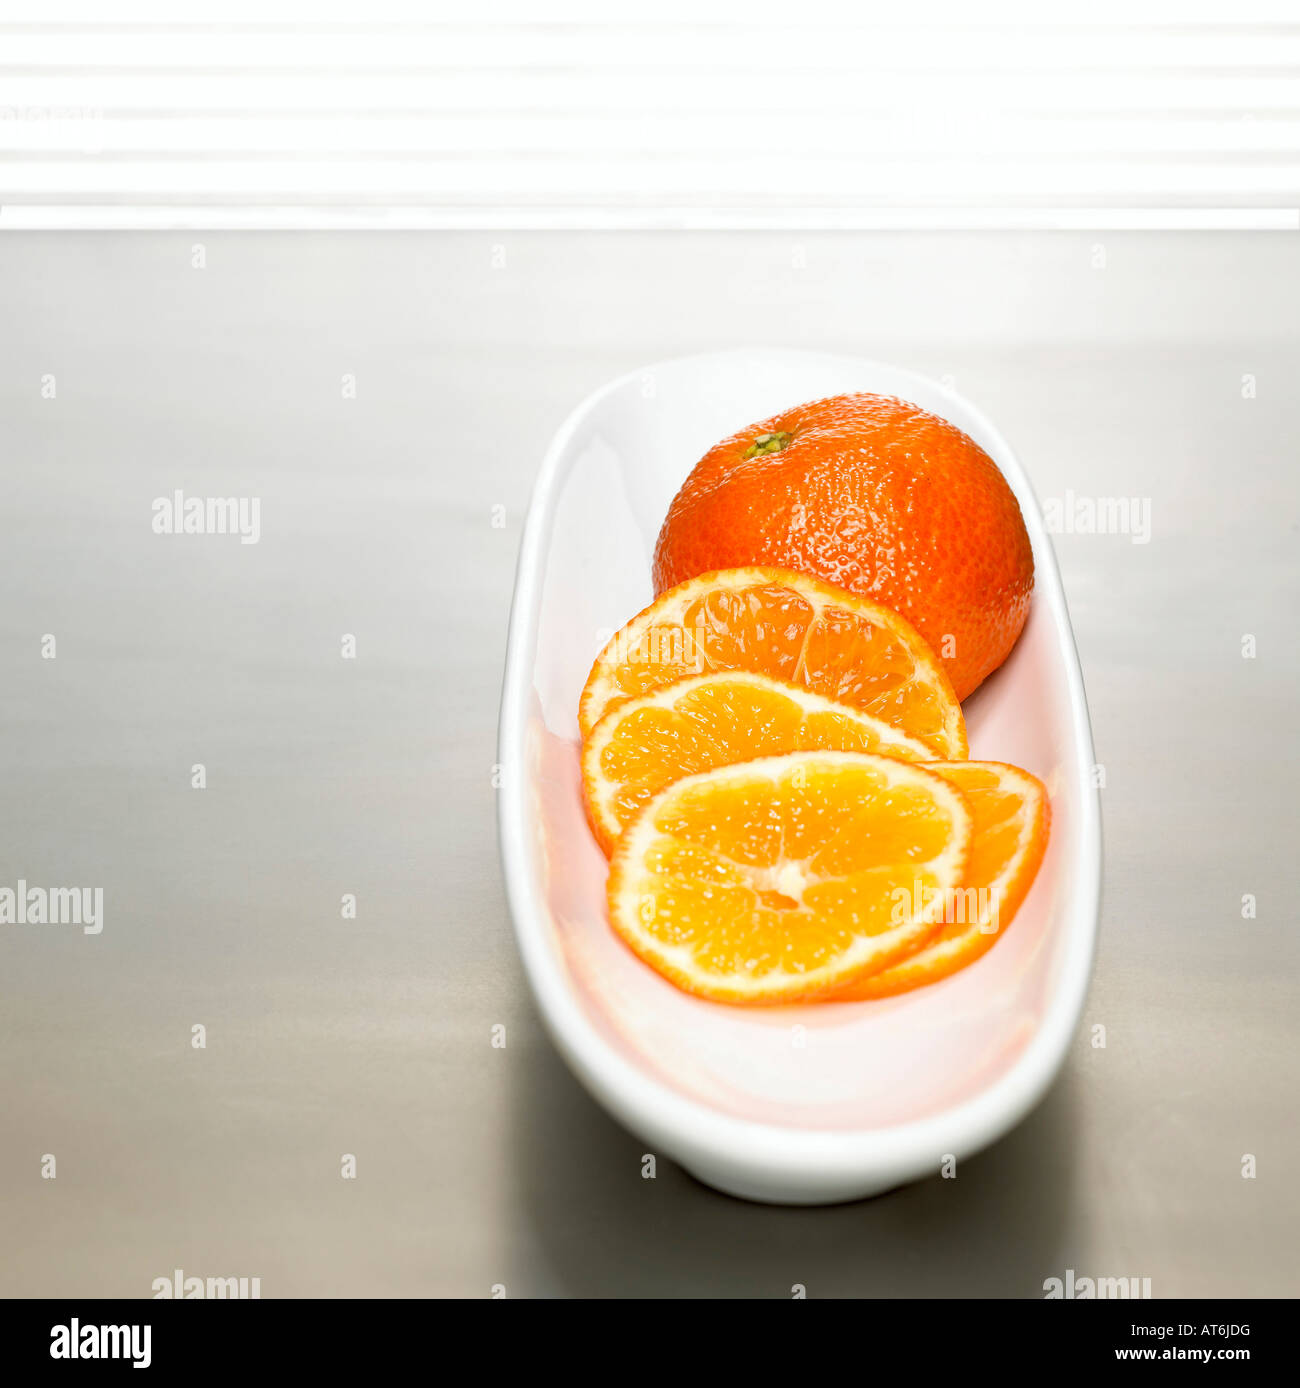 Sliced tangerines on bowl, close-up - Stock Image